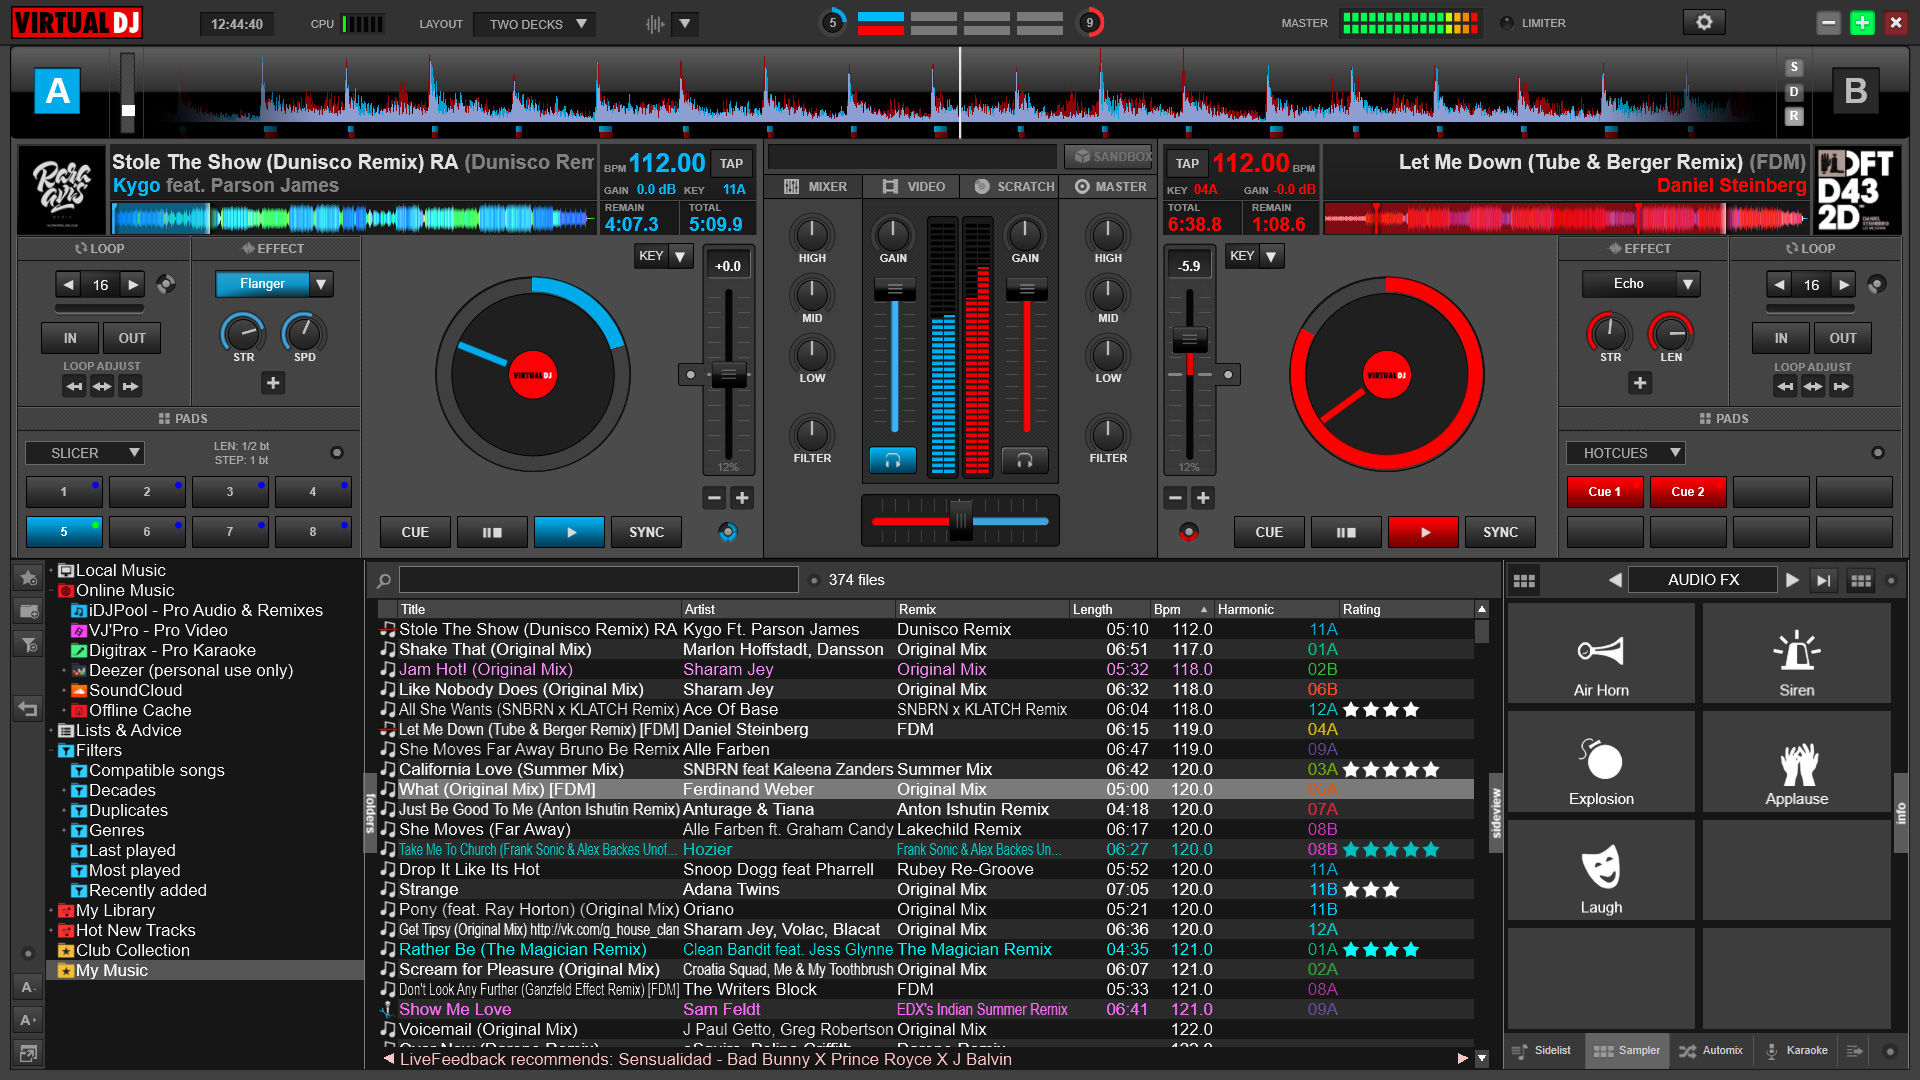 DJ Software - VirtualDJ - The #1 Most Popular DJ Software